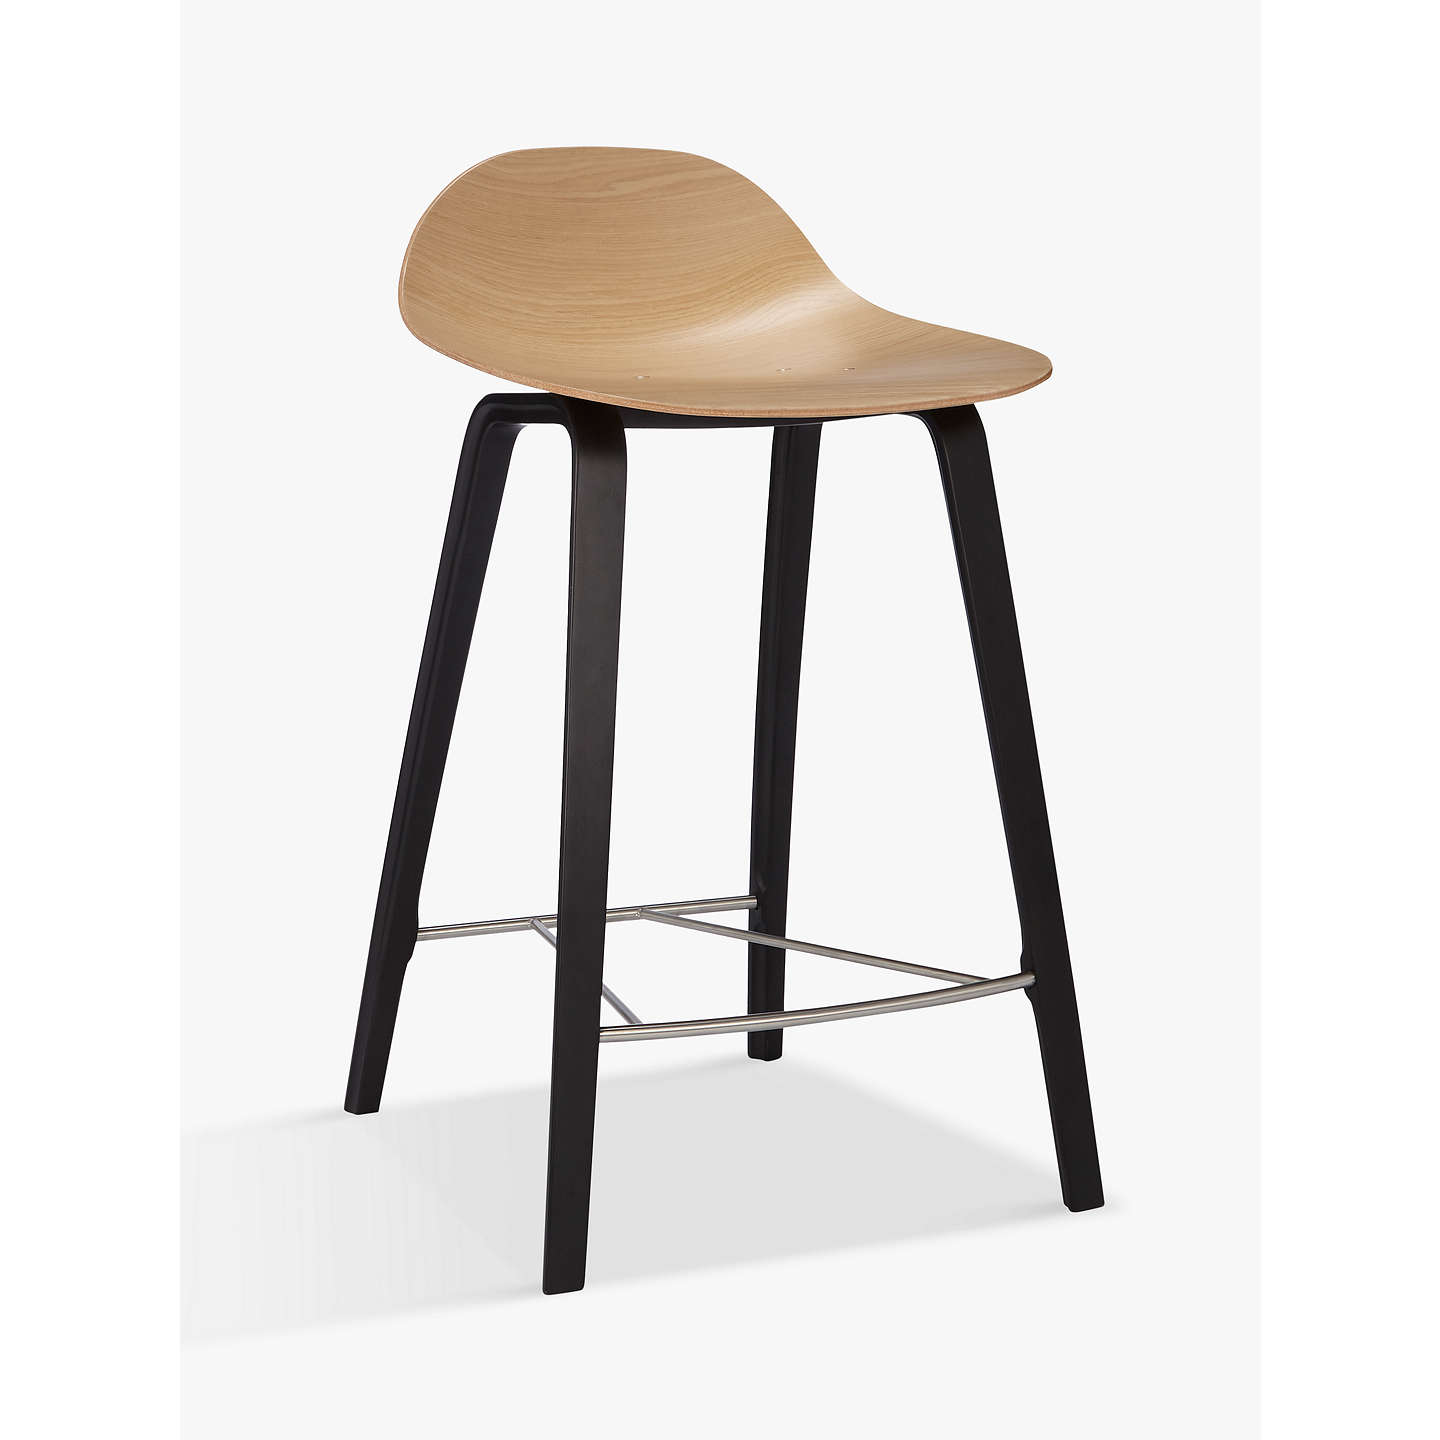 Kitchen Stools At John Lewis: Ebbe Gehl For John Lewis Cocoon Bar Stool At John Lewis